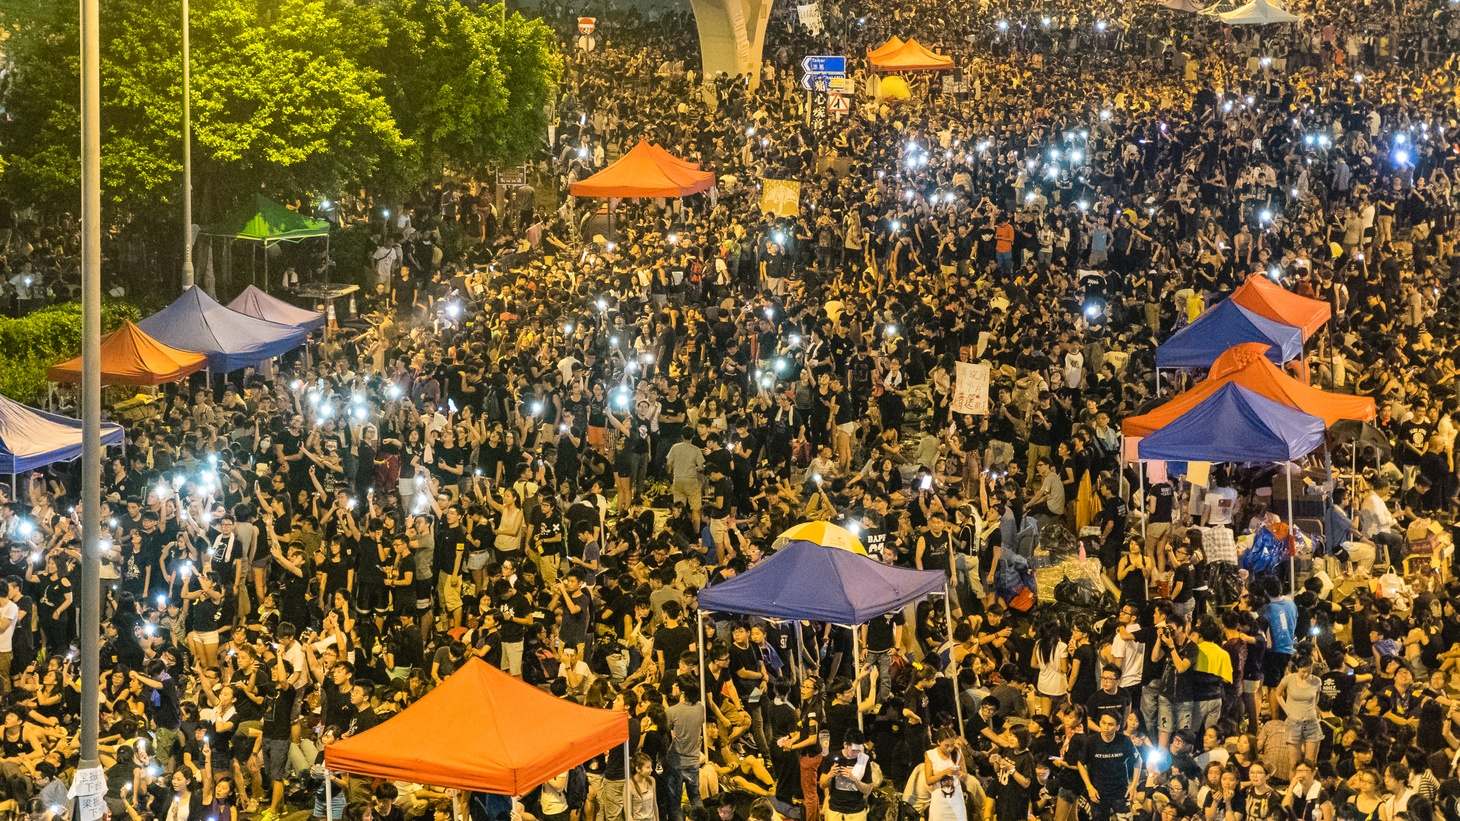 The standoff in Hong Kong, the Secret Service collapses, Ebola comes to America